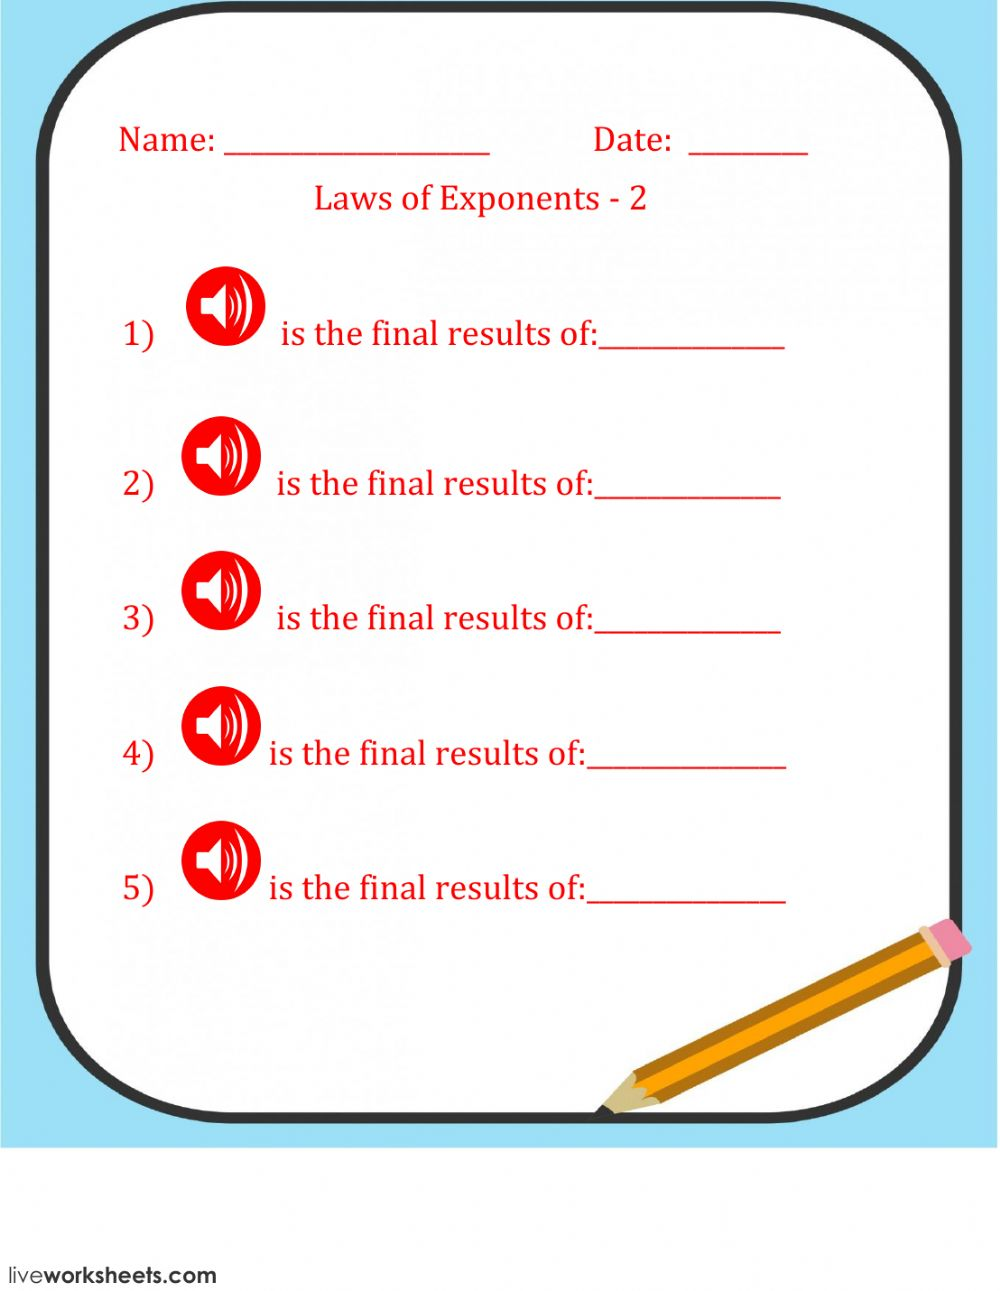 Laws Of Exponents 2 Interactive Worksheet